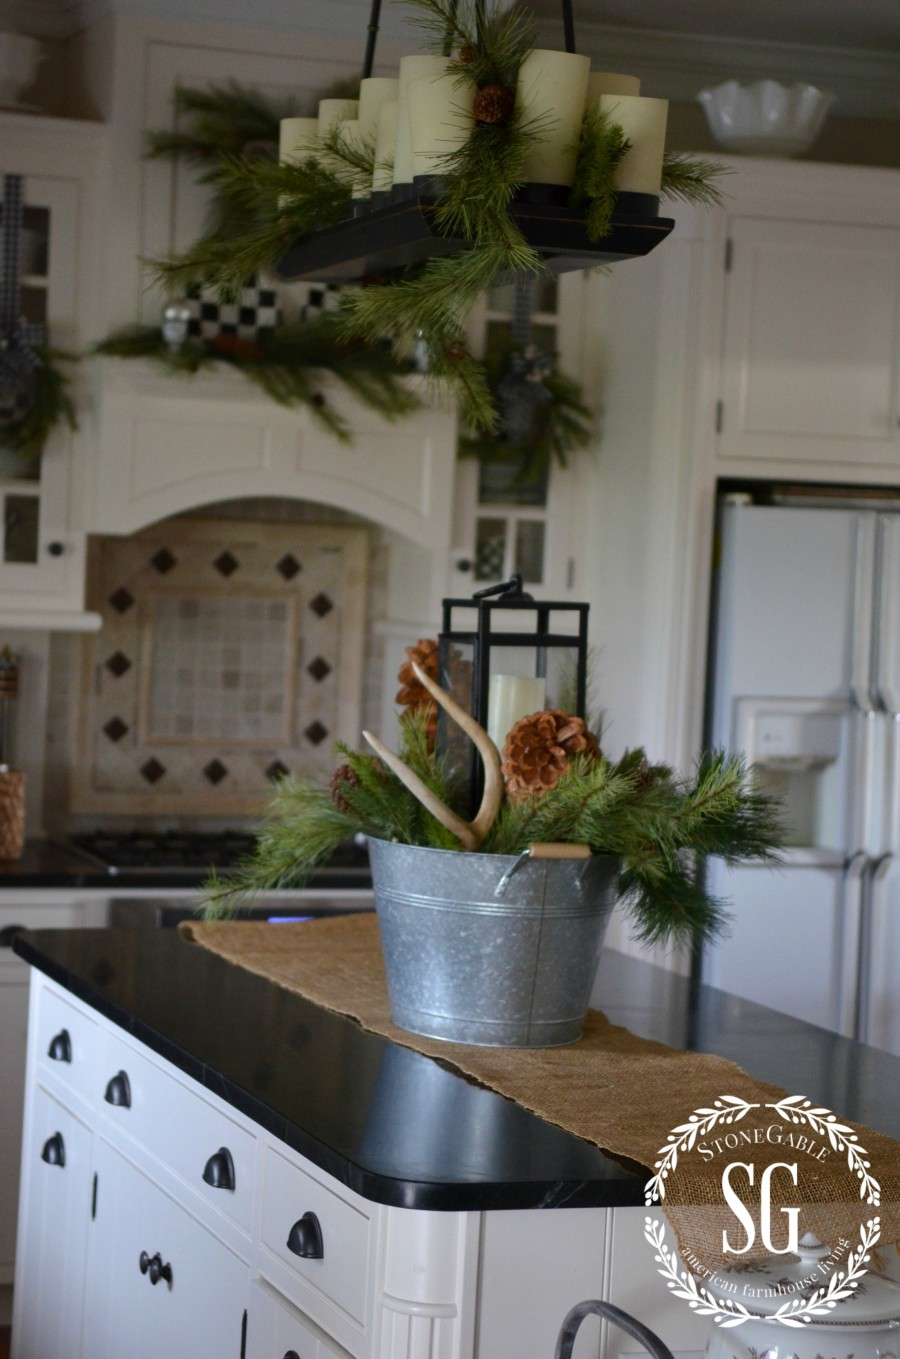 Farmhouse Wreaths On Kitchen Cabinets